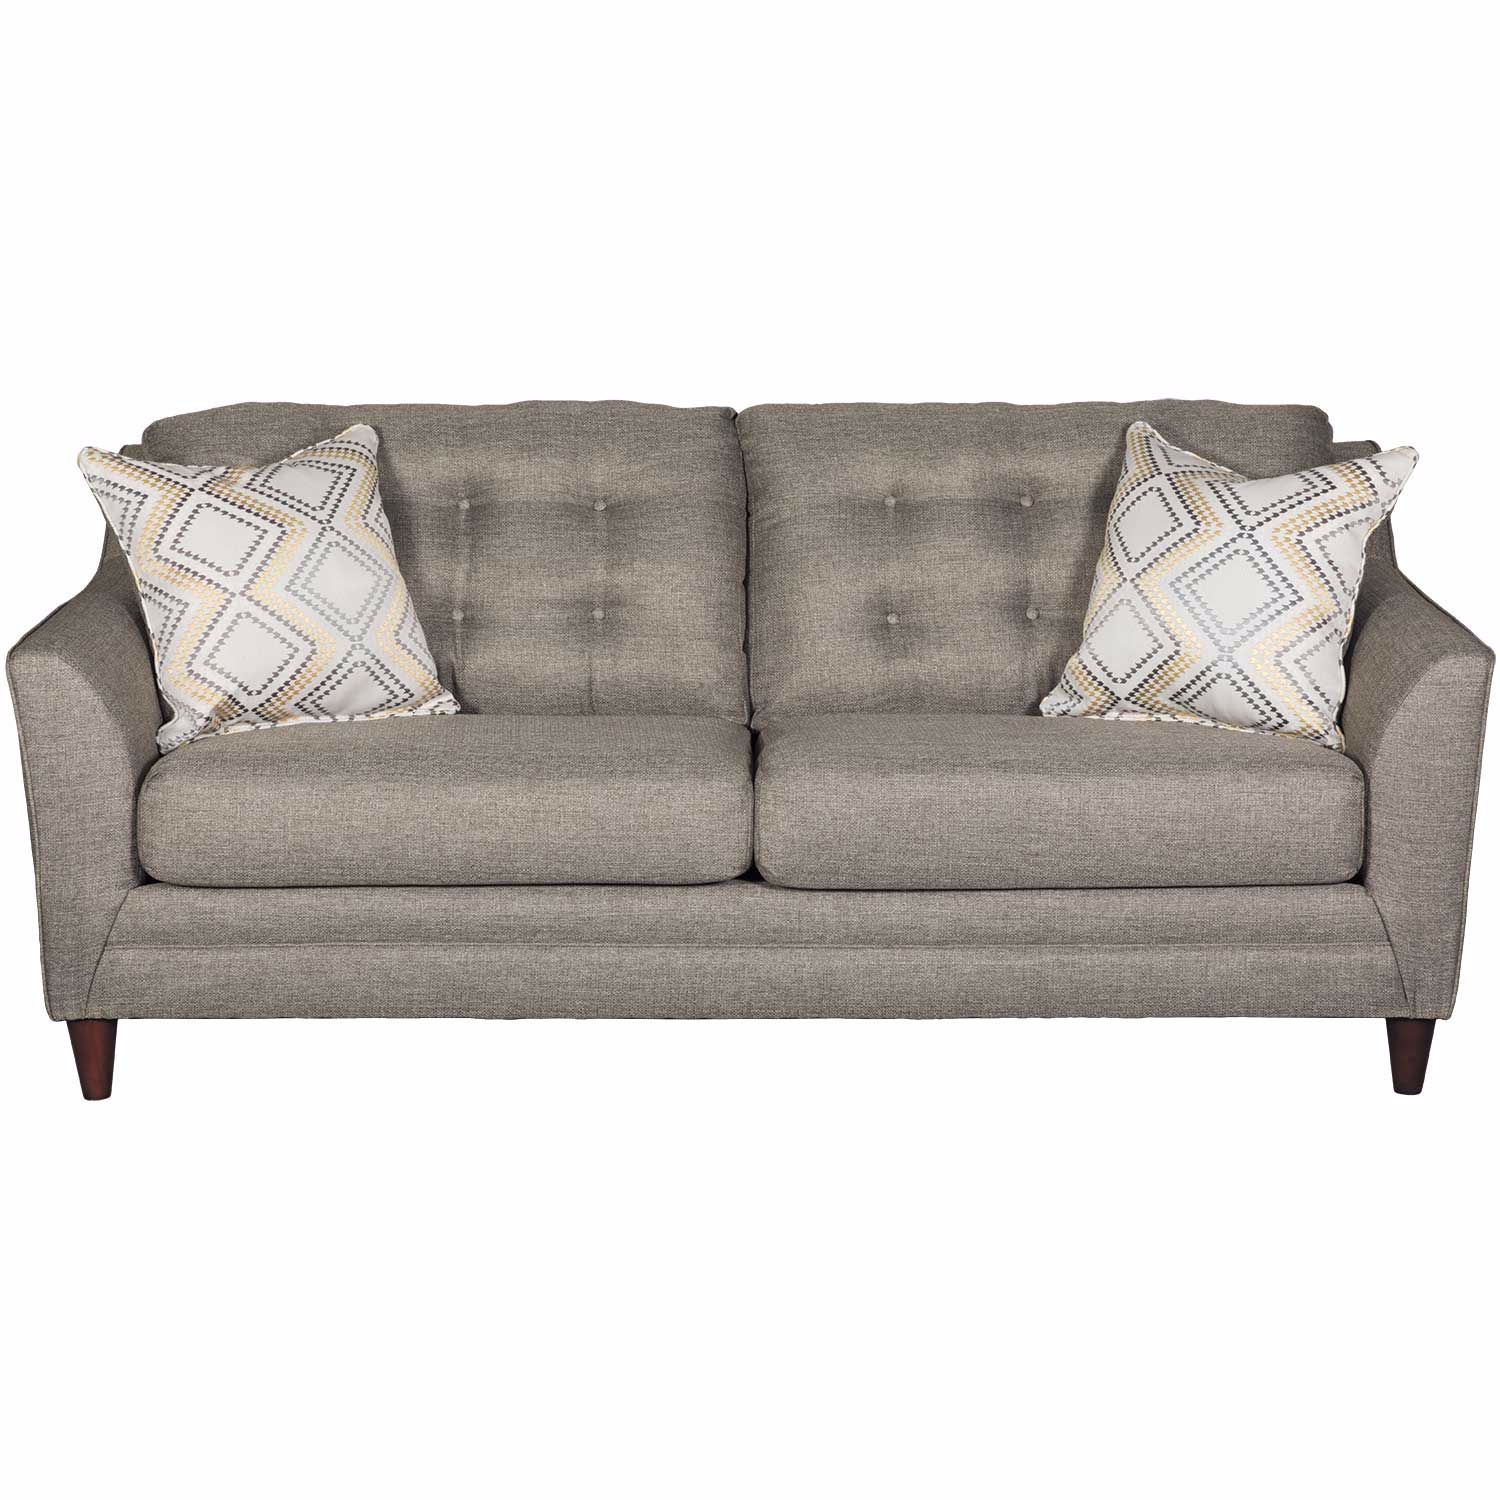 Jensen Sofa Bed Next Jensen Grey Tufted Sofa